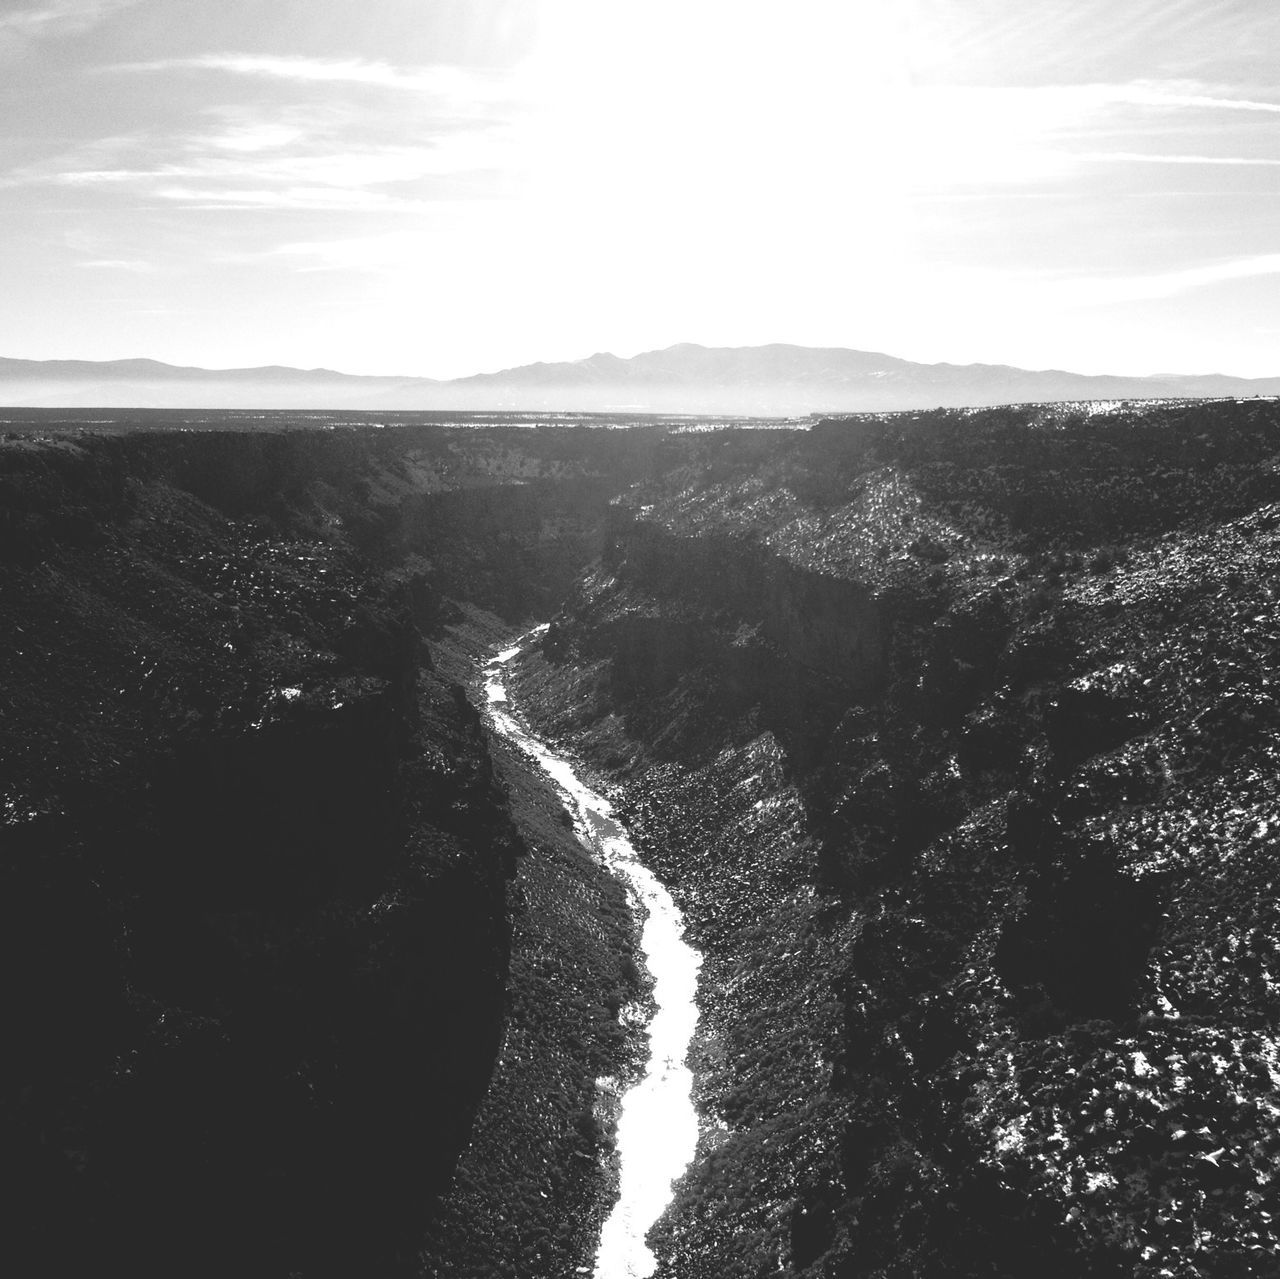 EyeEm Nature Lover Blackandwhite Mountains Water_collection